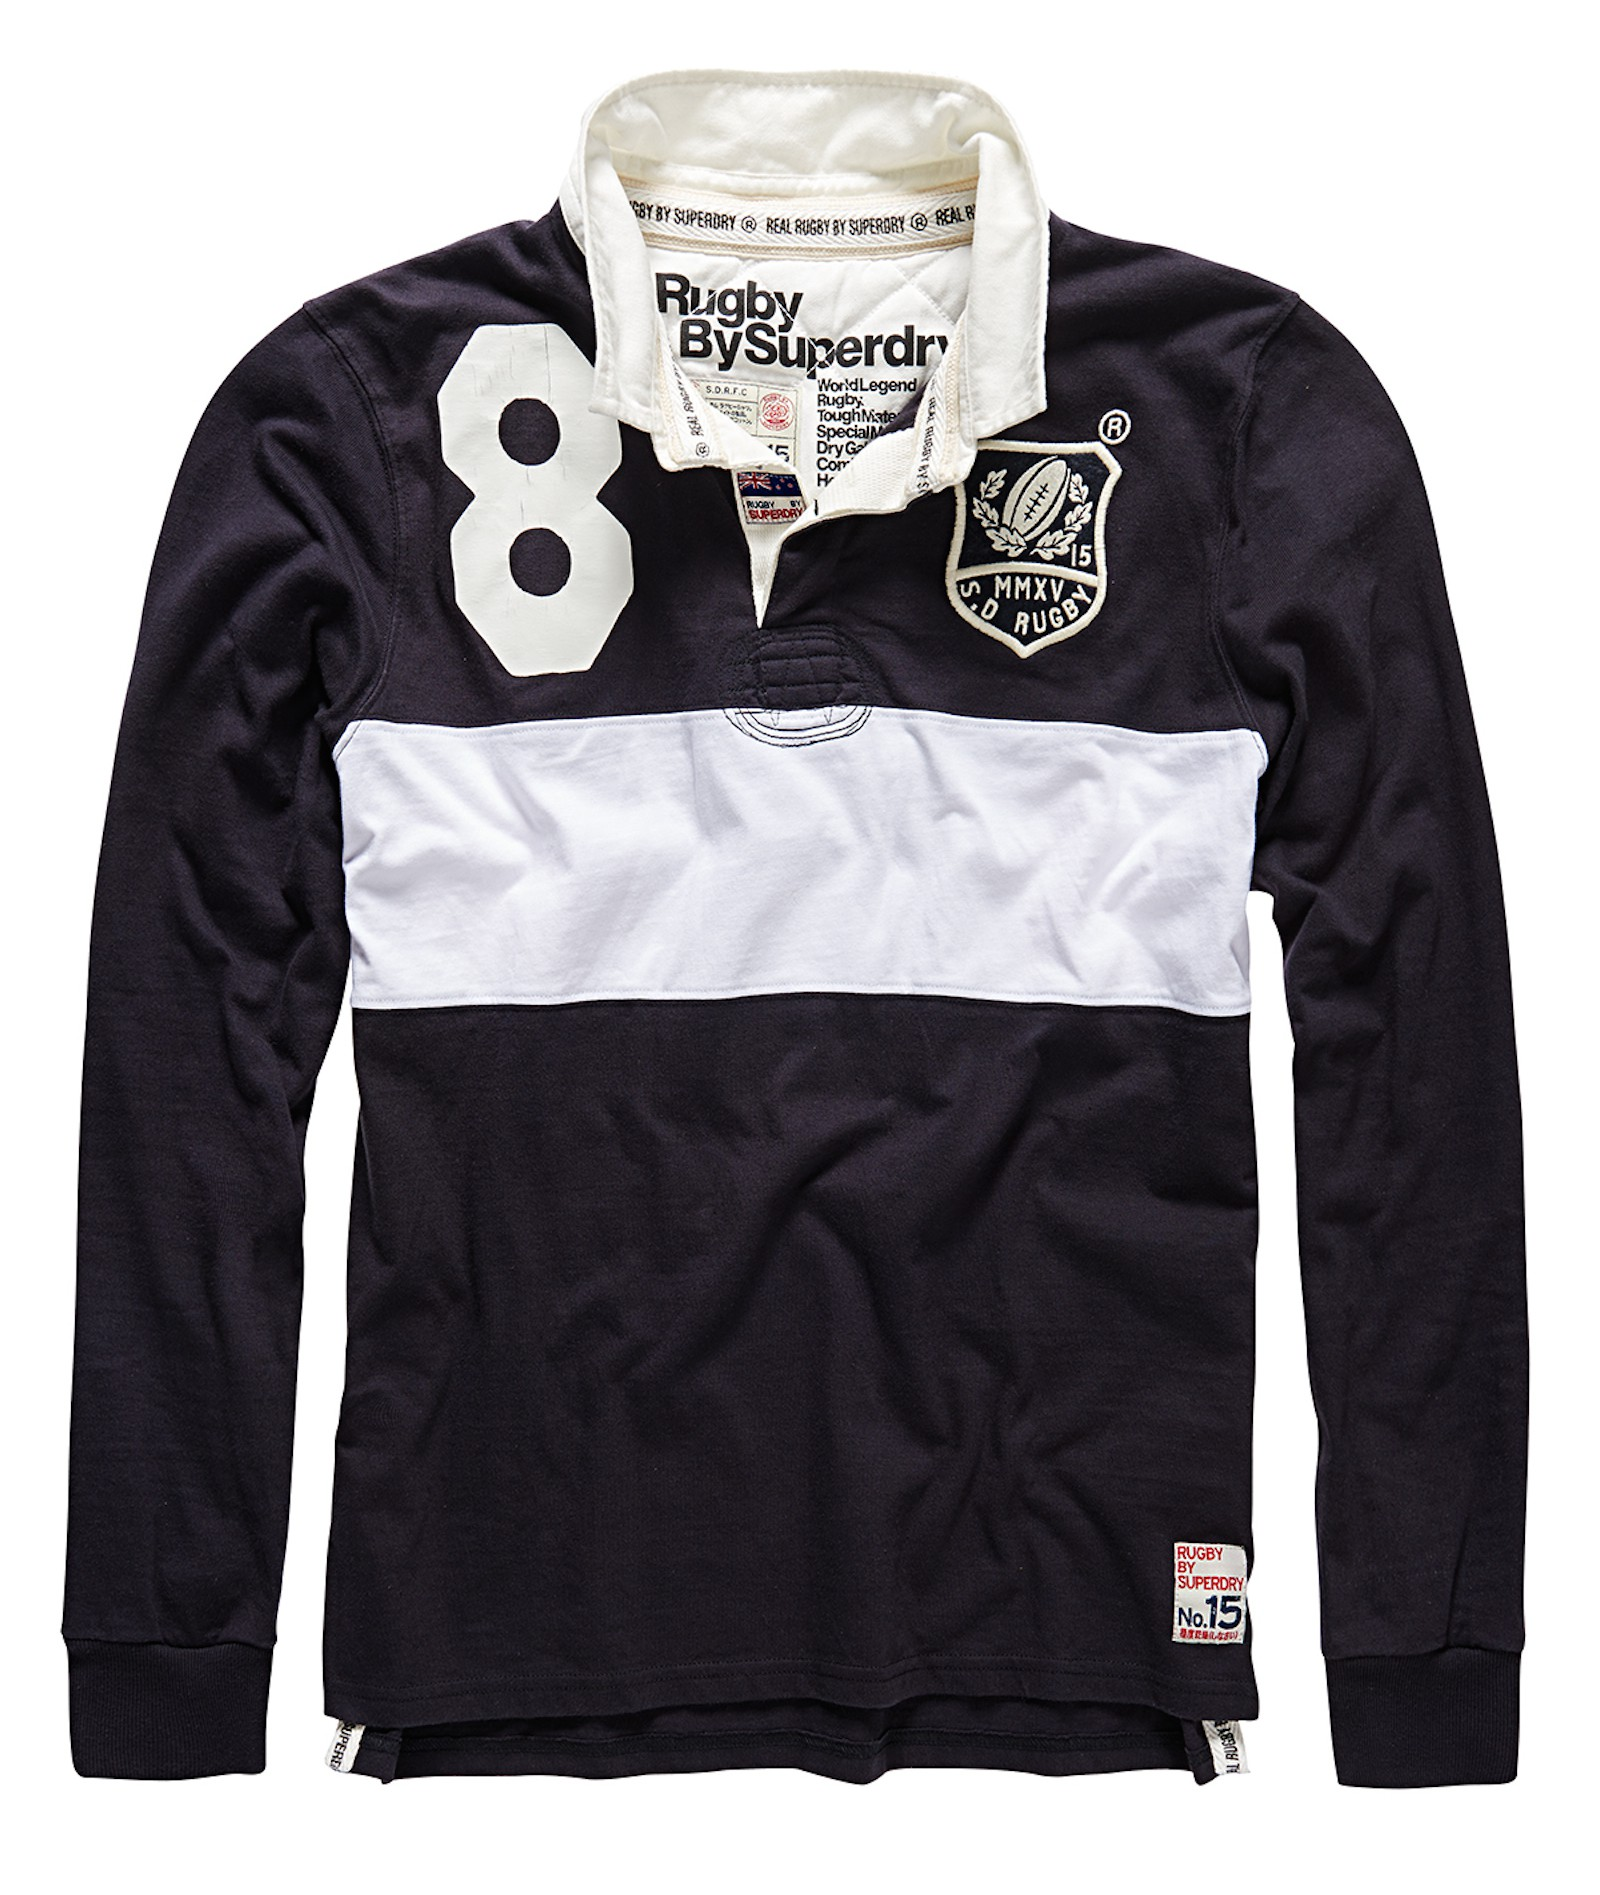 7aee10f707d Stash 'N' Grab: Superdry World Legends Rugby Shirts – Rugby Shirt Watch